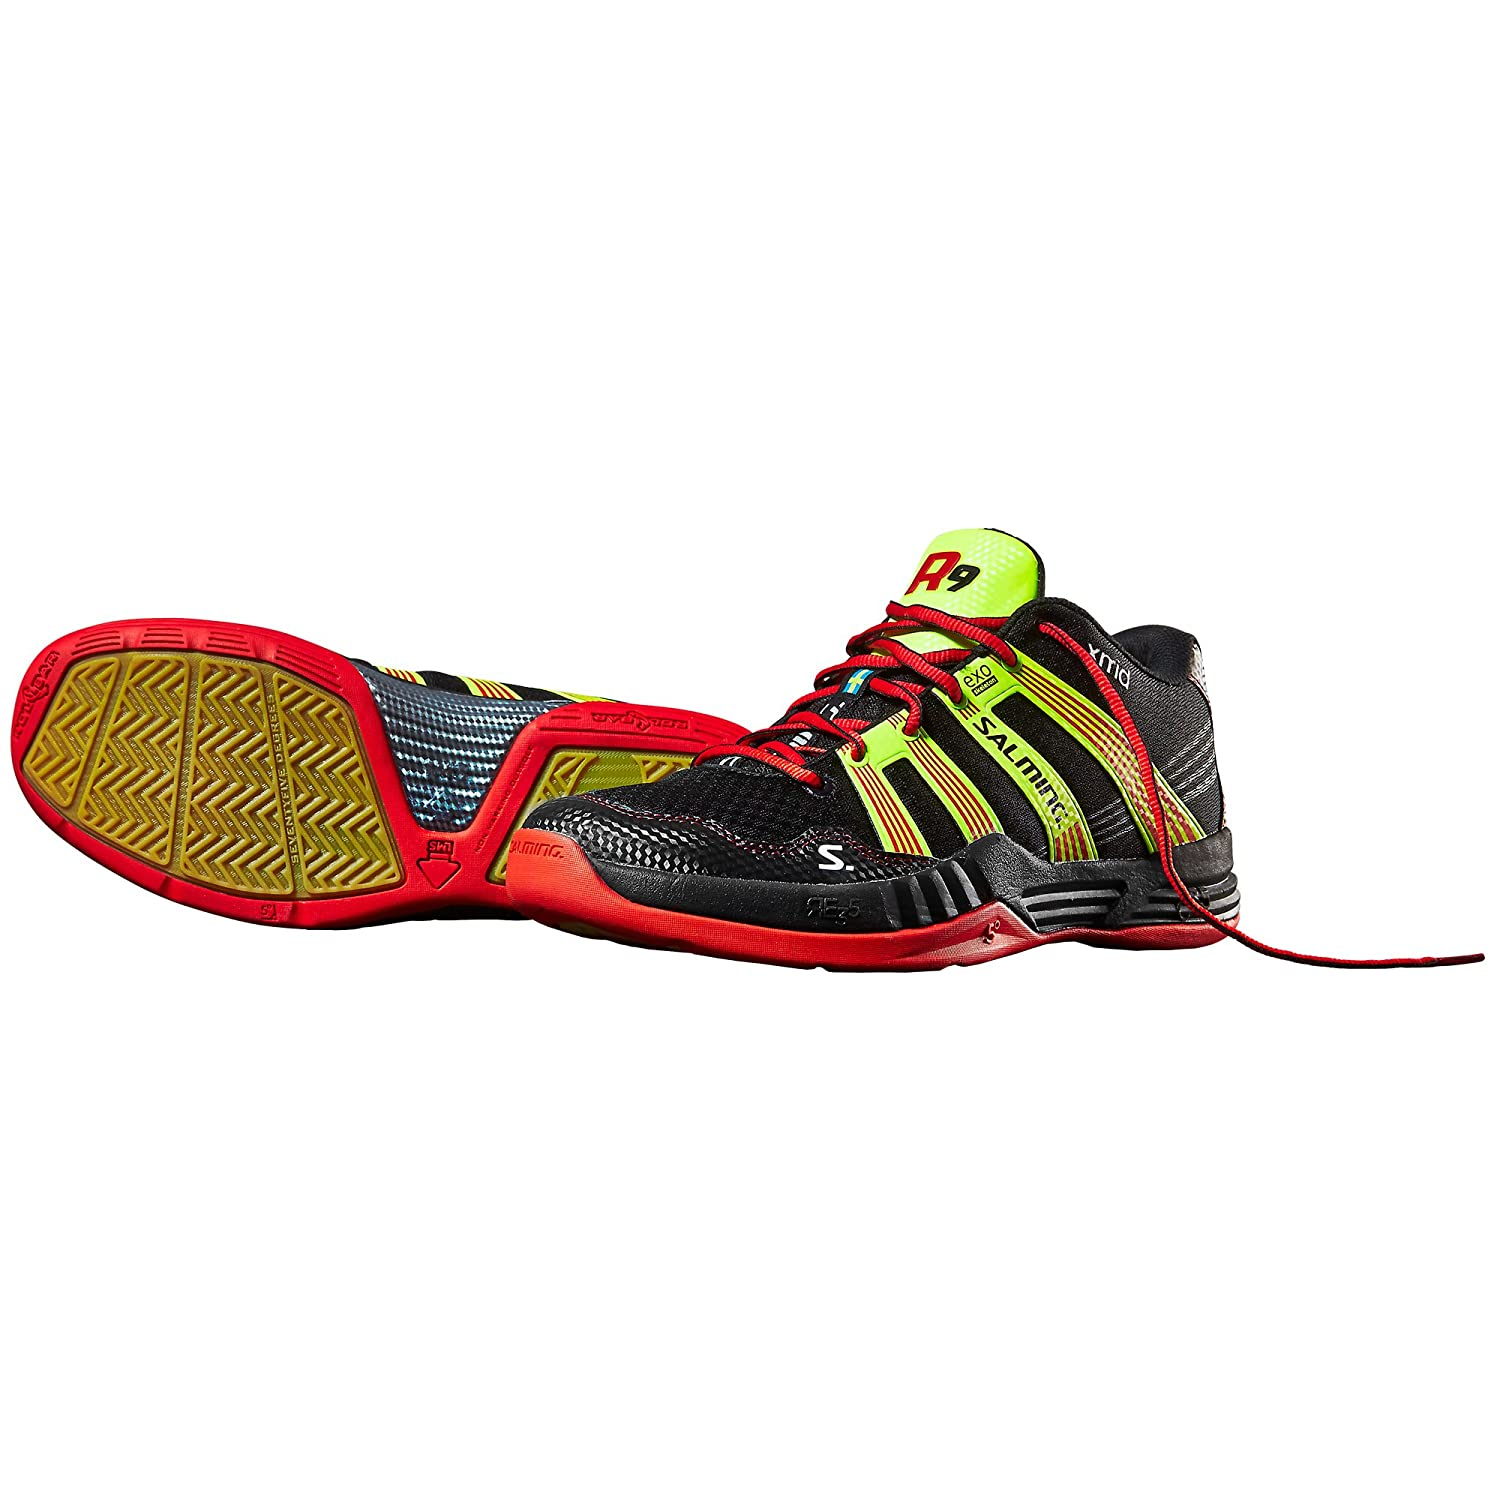 Salming Race R9 Mid 2.0 Red/Black Squash Shoes 1234090-0105